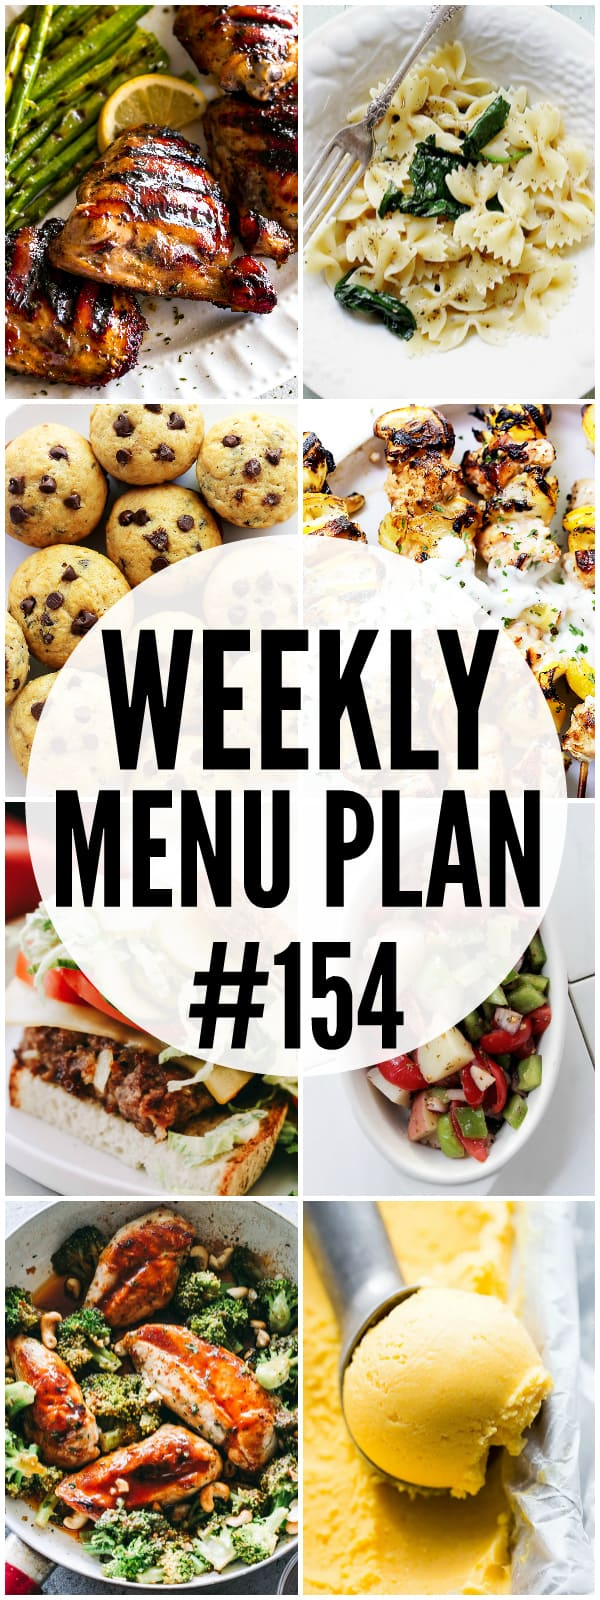 WEEKLY MENU PLAN (#154) - A delicious collection of dinner, side dish and dessert recipes to help you plan your weekly menu and make life easier for you!